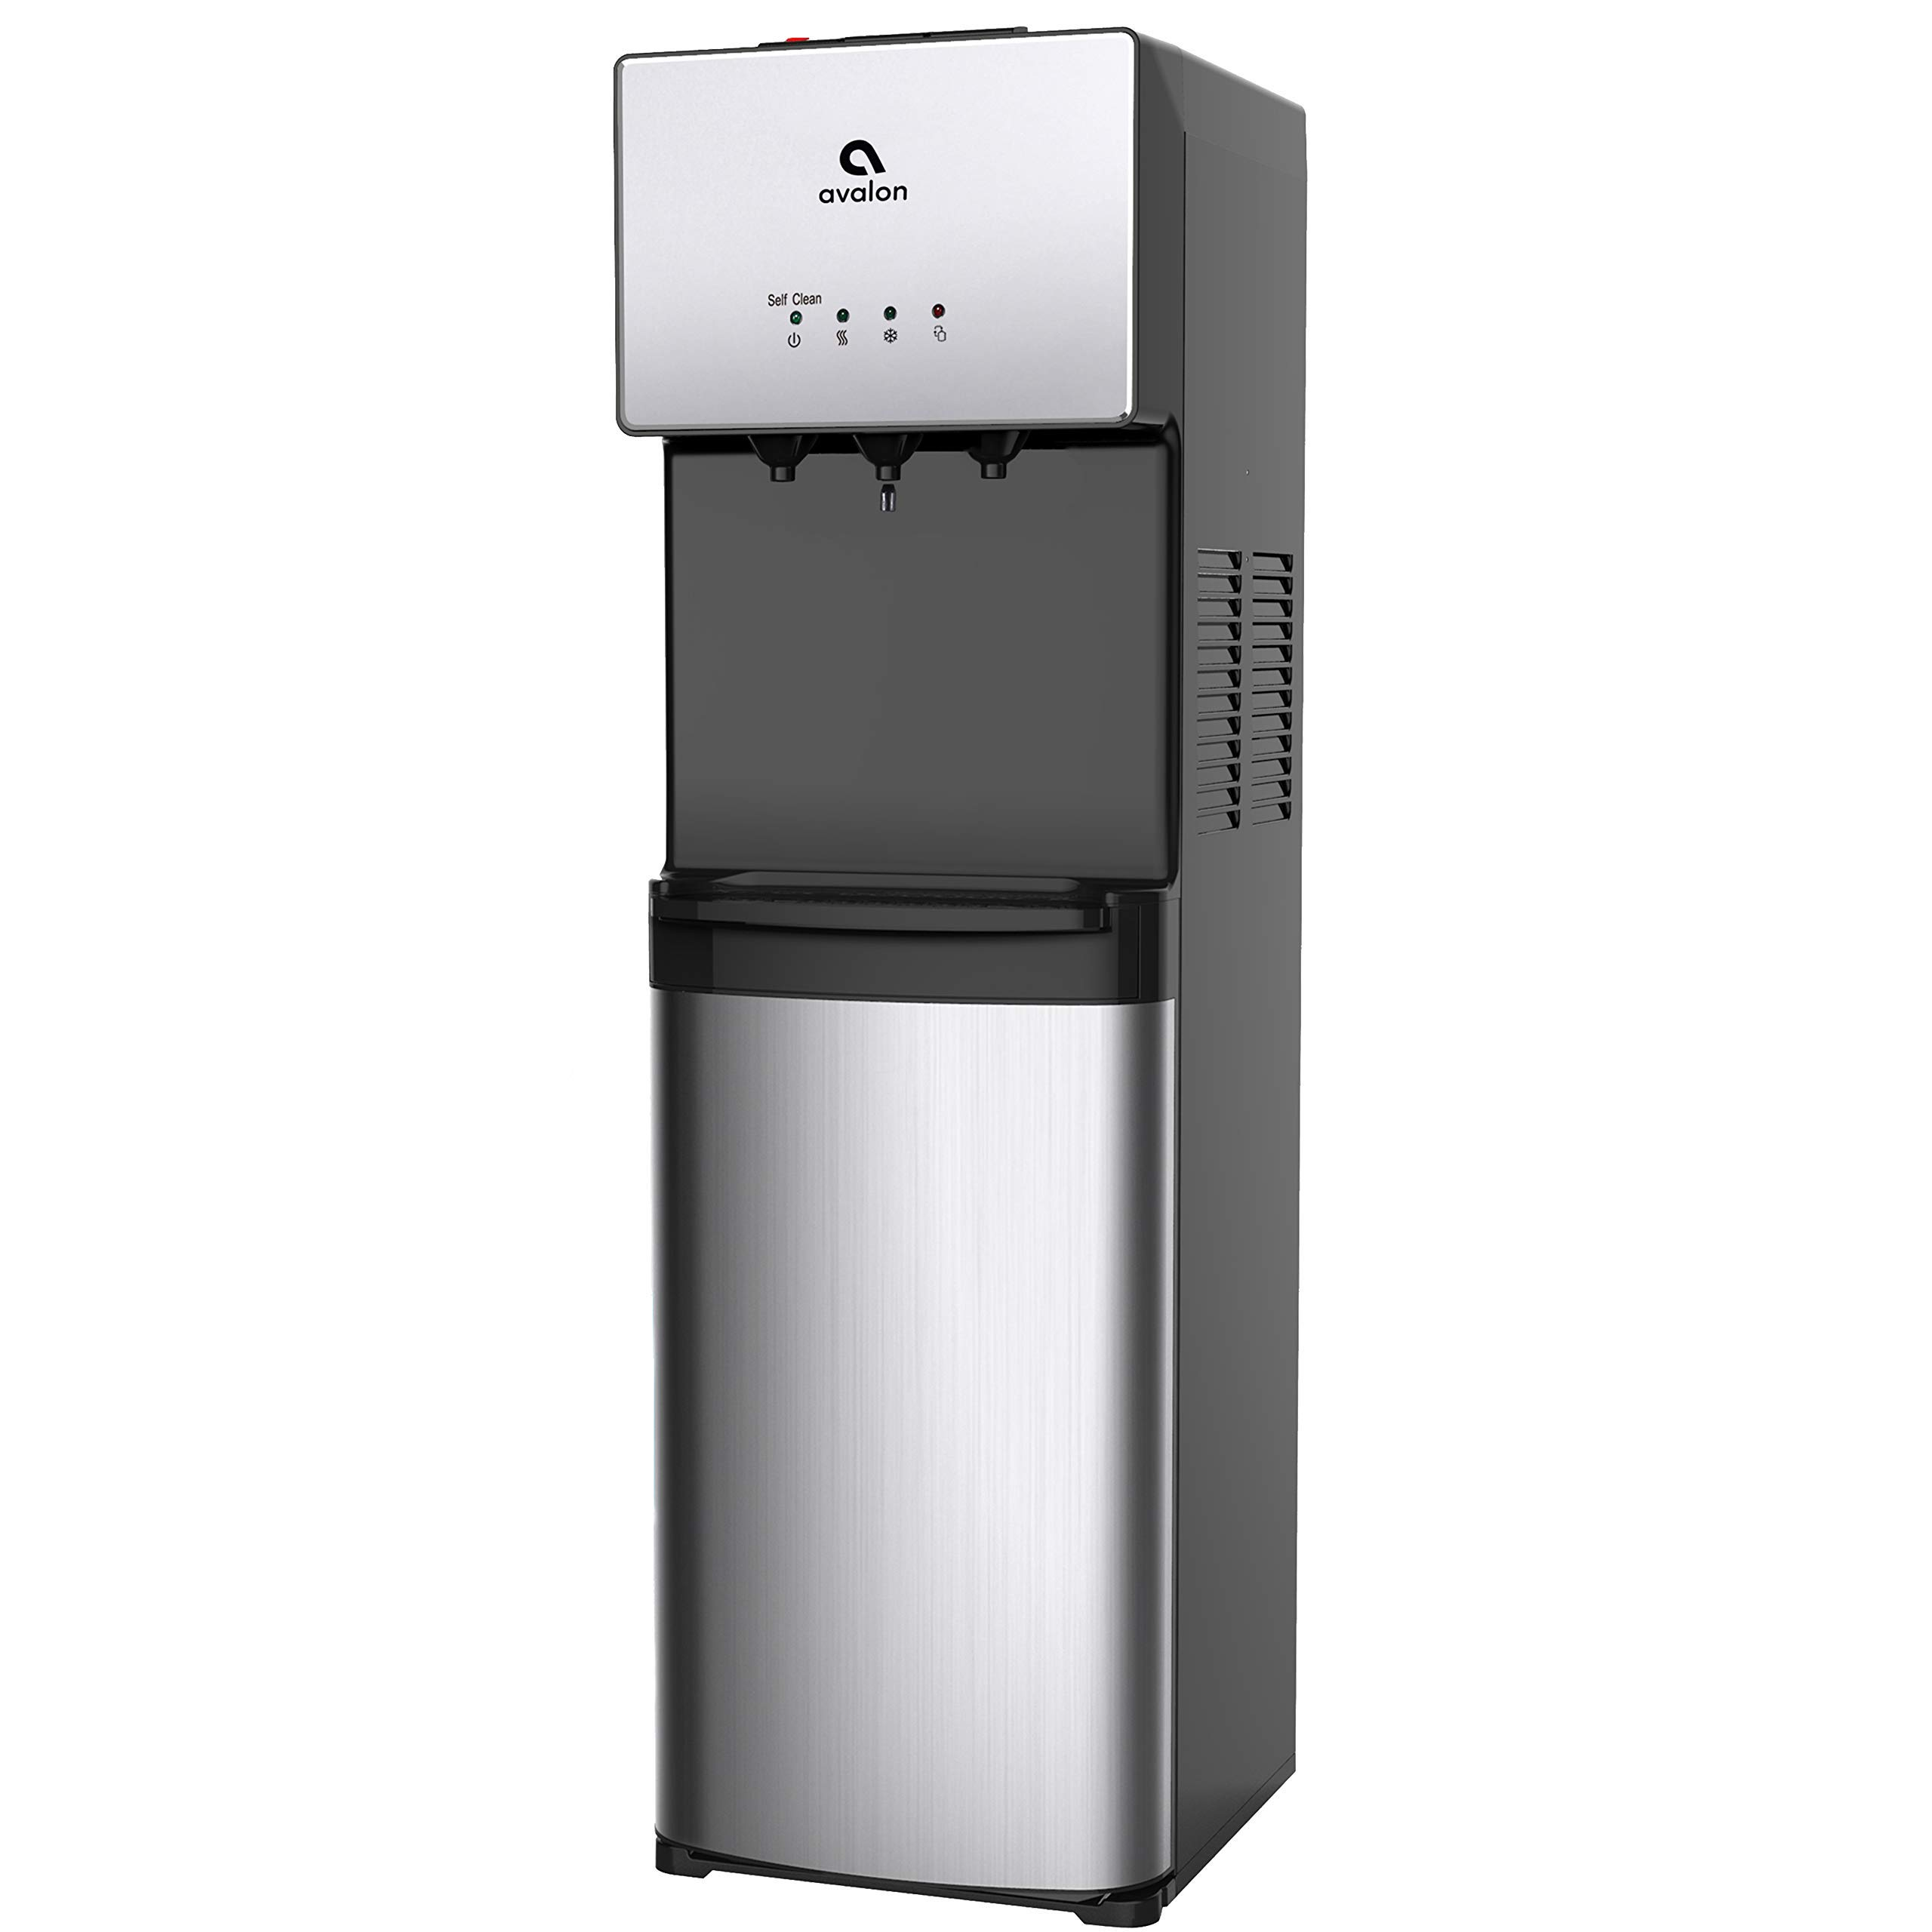 Avalon Limited Edition Self Cleaning Water Cooler Water Dispenser - 3 Temperature Settings - Hot, Cold, and Room Water, Stainless Steel, Bottom Loading - UL/Energy Star Approved (Renewed)